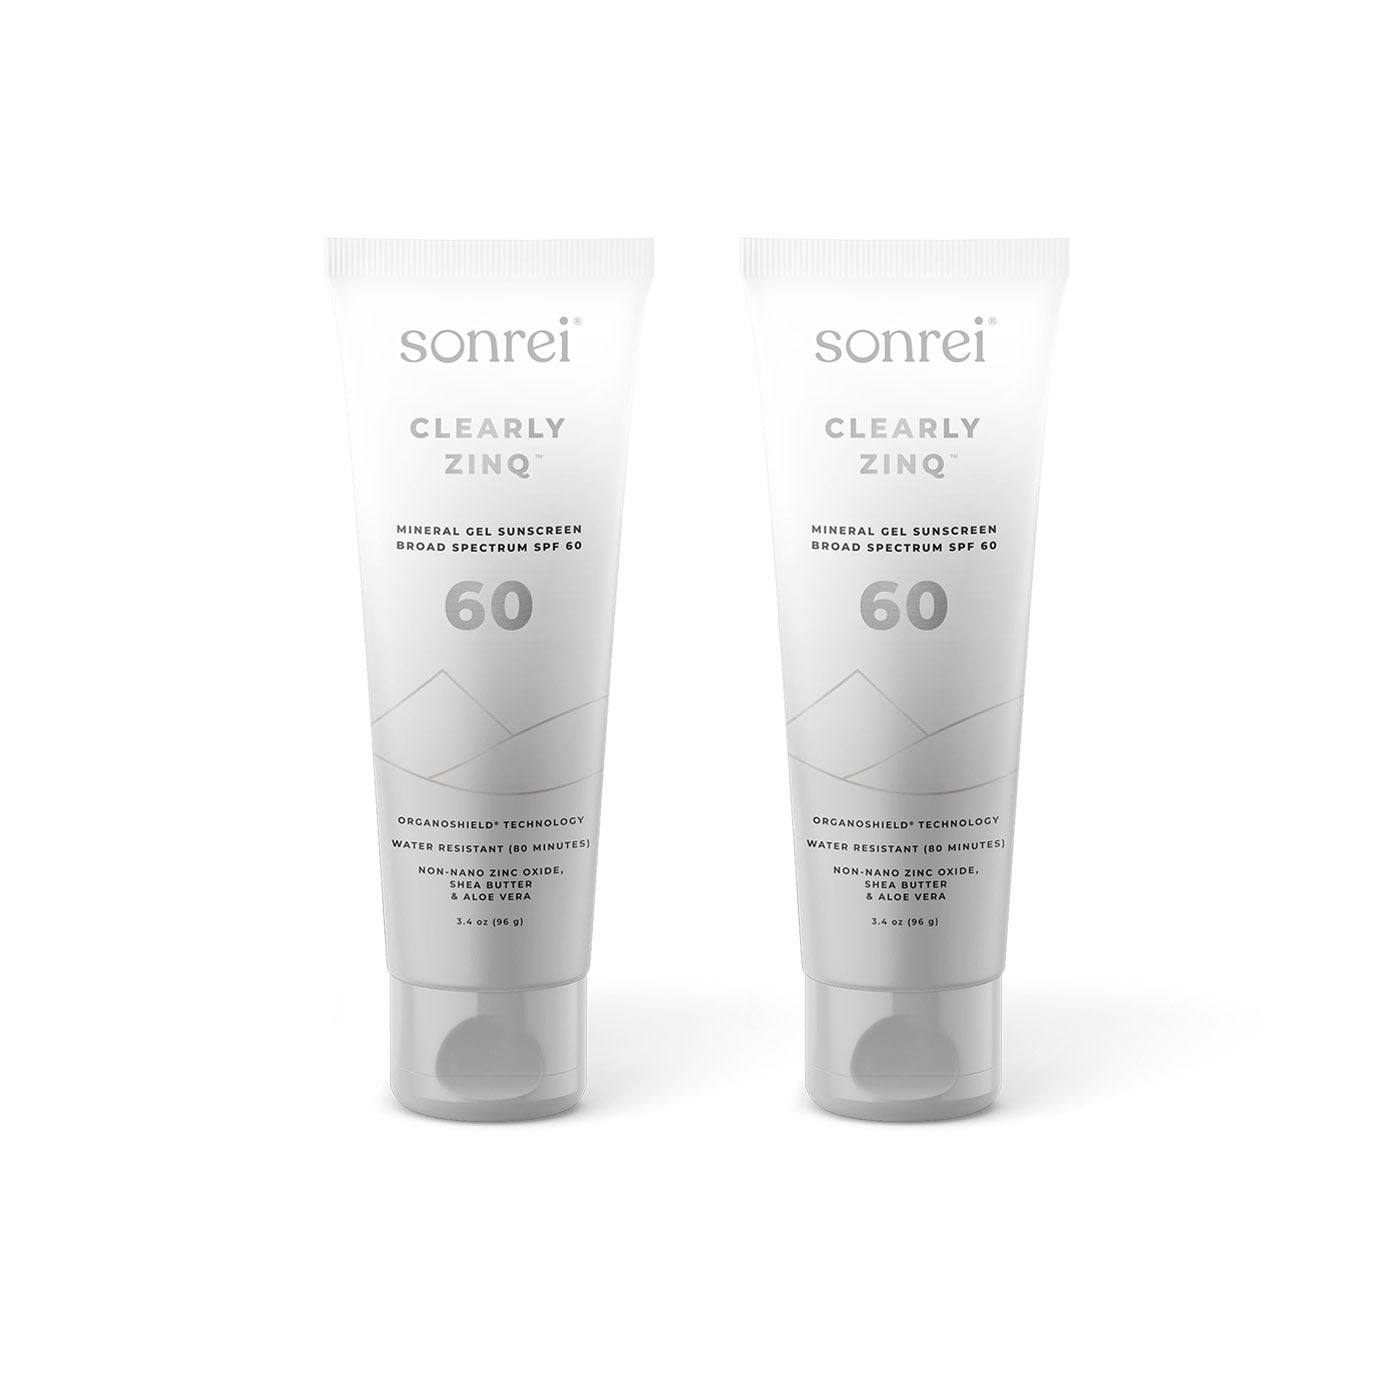 Sonrei Clearly Zinq SPF 60 (2-Pack Bundle) is a premium mineral sunscreen that rubs in clear and feels great on your skin.